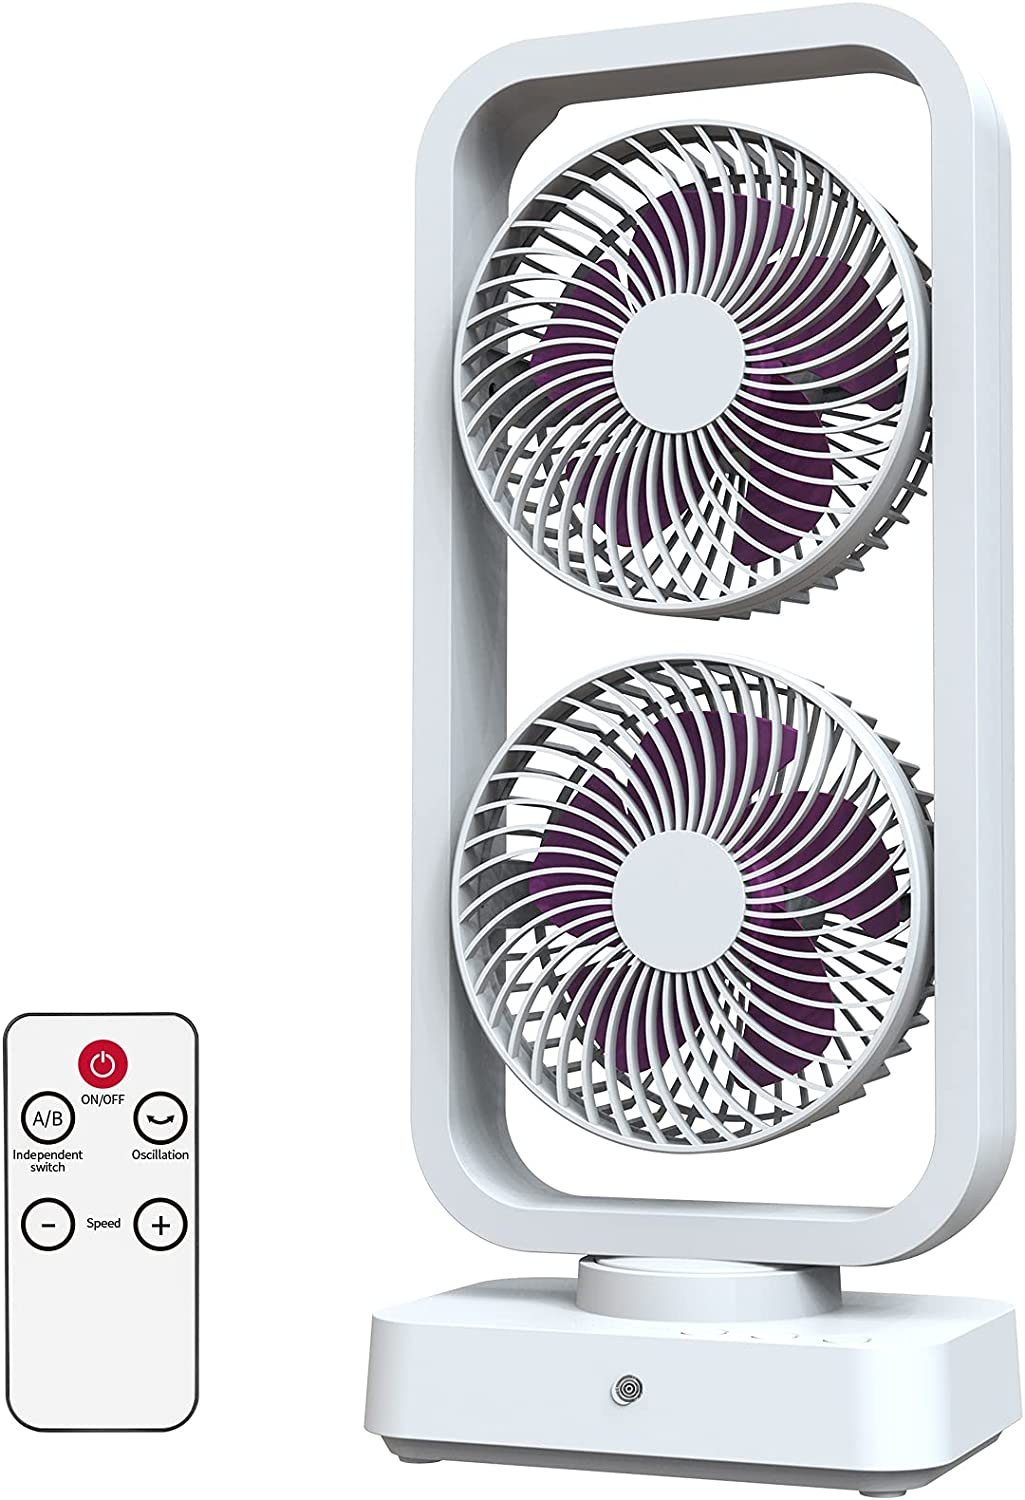 10000mAh Battery Operated Oscillating Max 72% OFF Selling rankings Fan w Remote 16Inch Recha